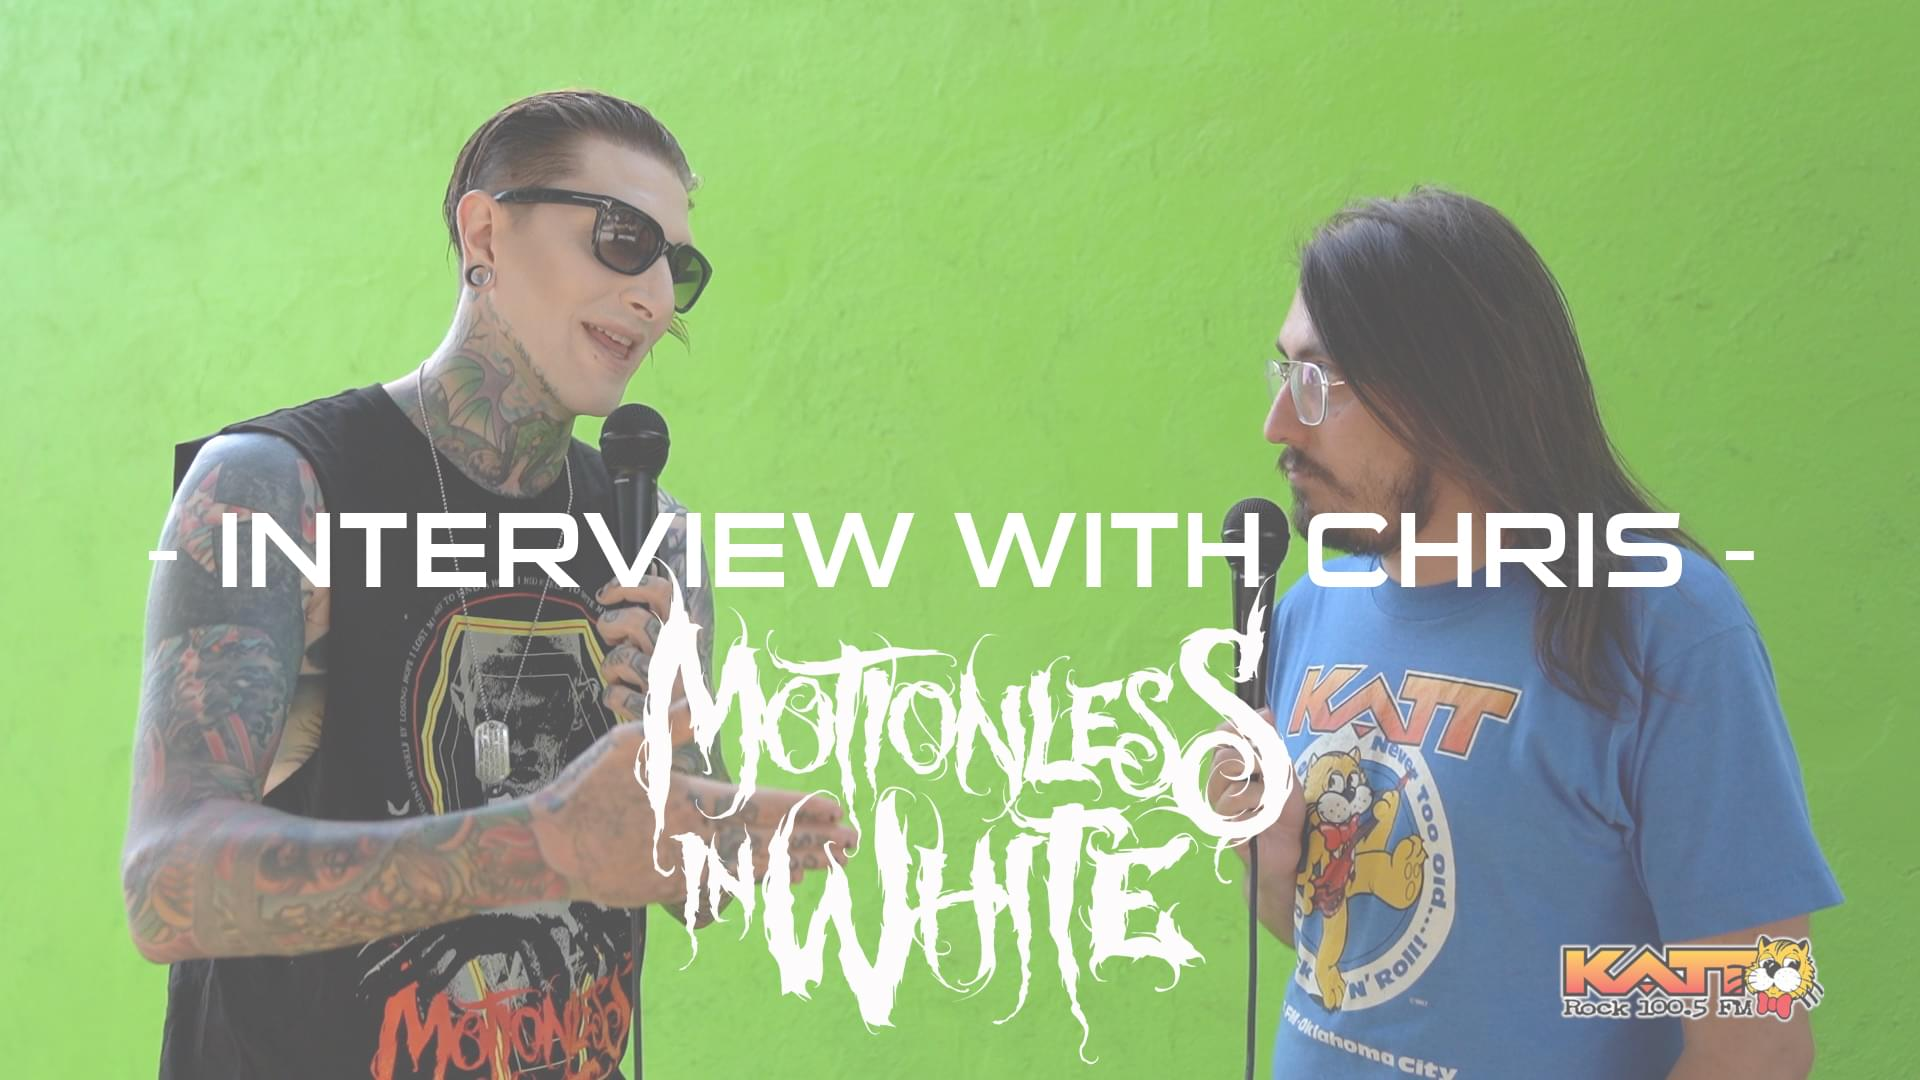 [VIDEO] Cameron talks to Chris Motionless of MOTIONLESS IN WHITE